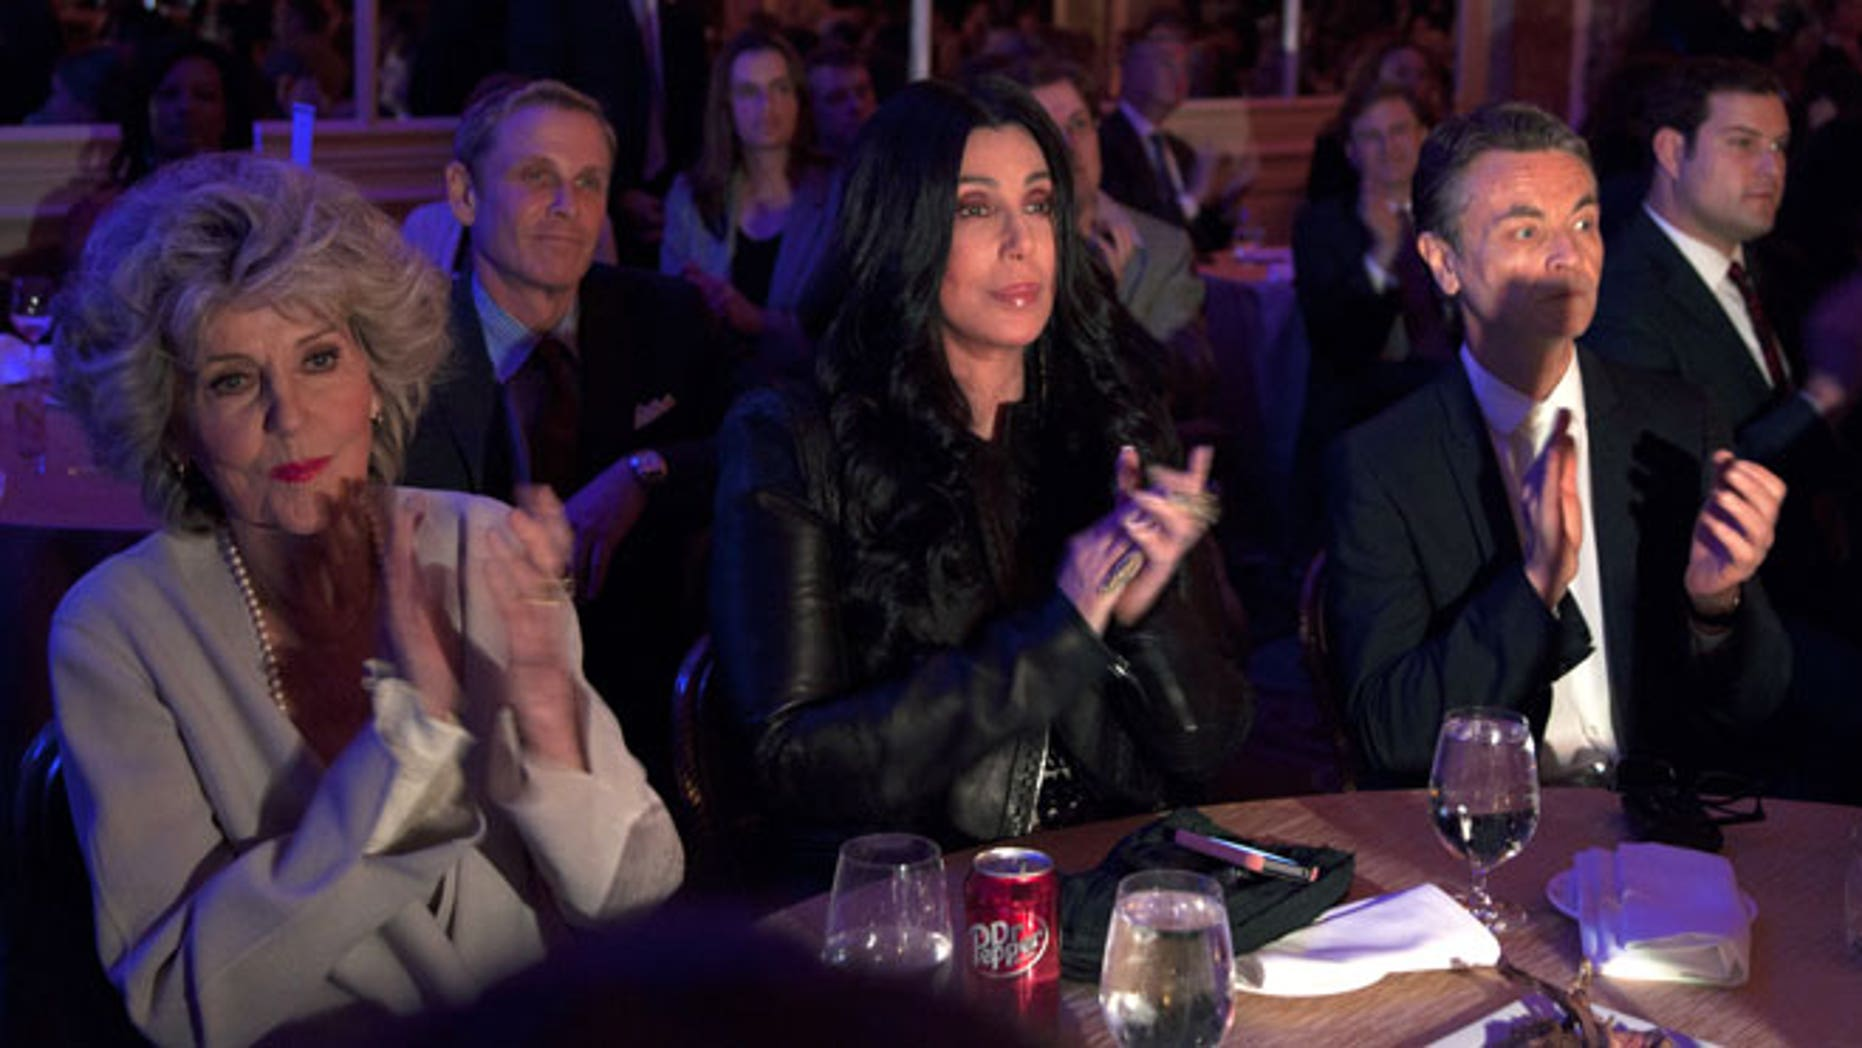 June 6, 2012: Cher looks at the stage and applauds as President Barack Obama speaks at a campaign event at the Beverly Wilshire Hotel, in Los Angeles.